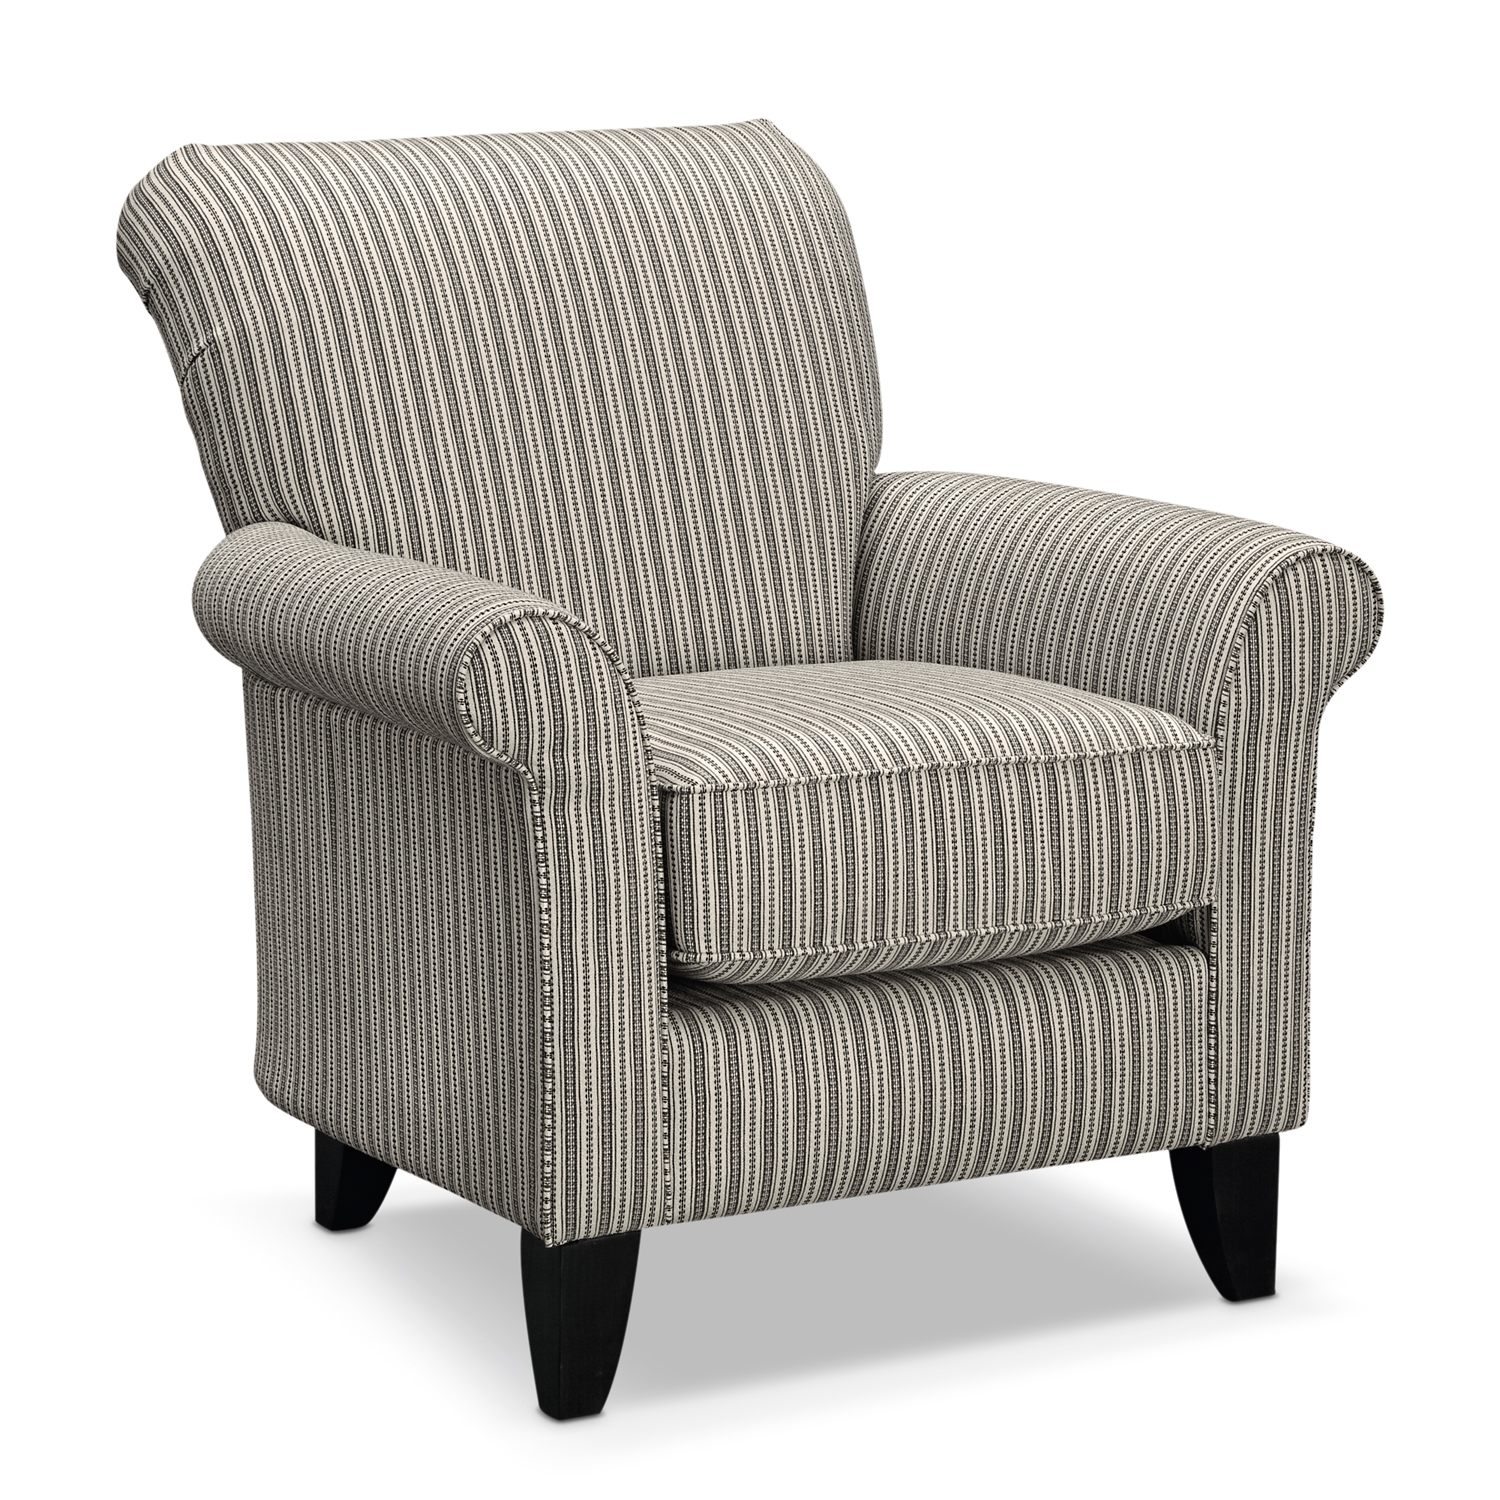 accent living room chairs. Accent chairs for living room  23 reasons to buy Hawk Haven